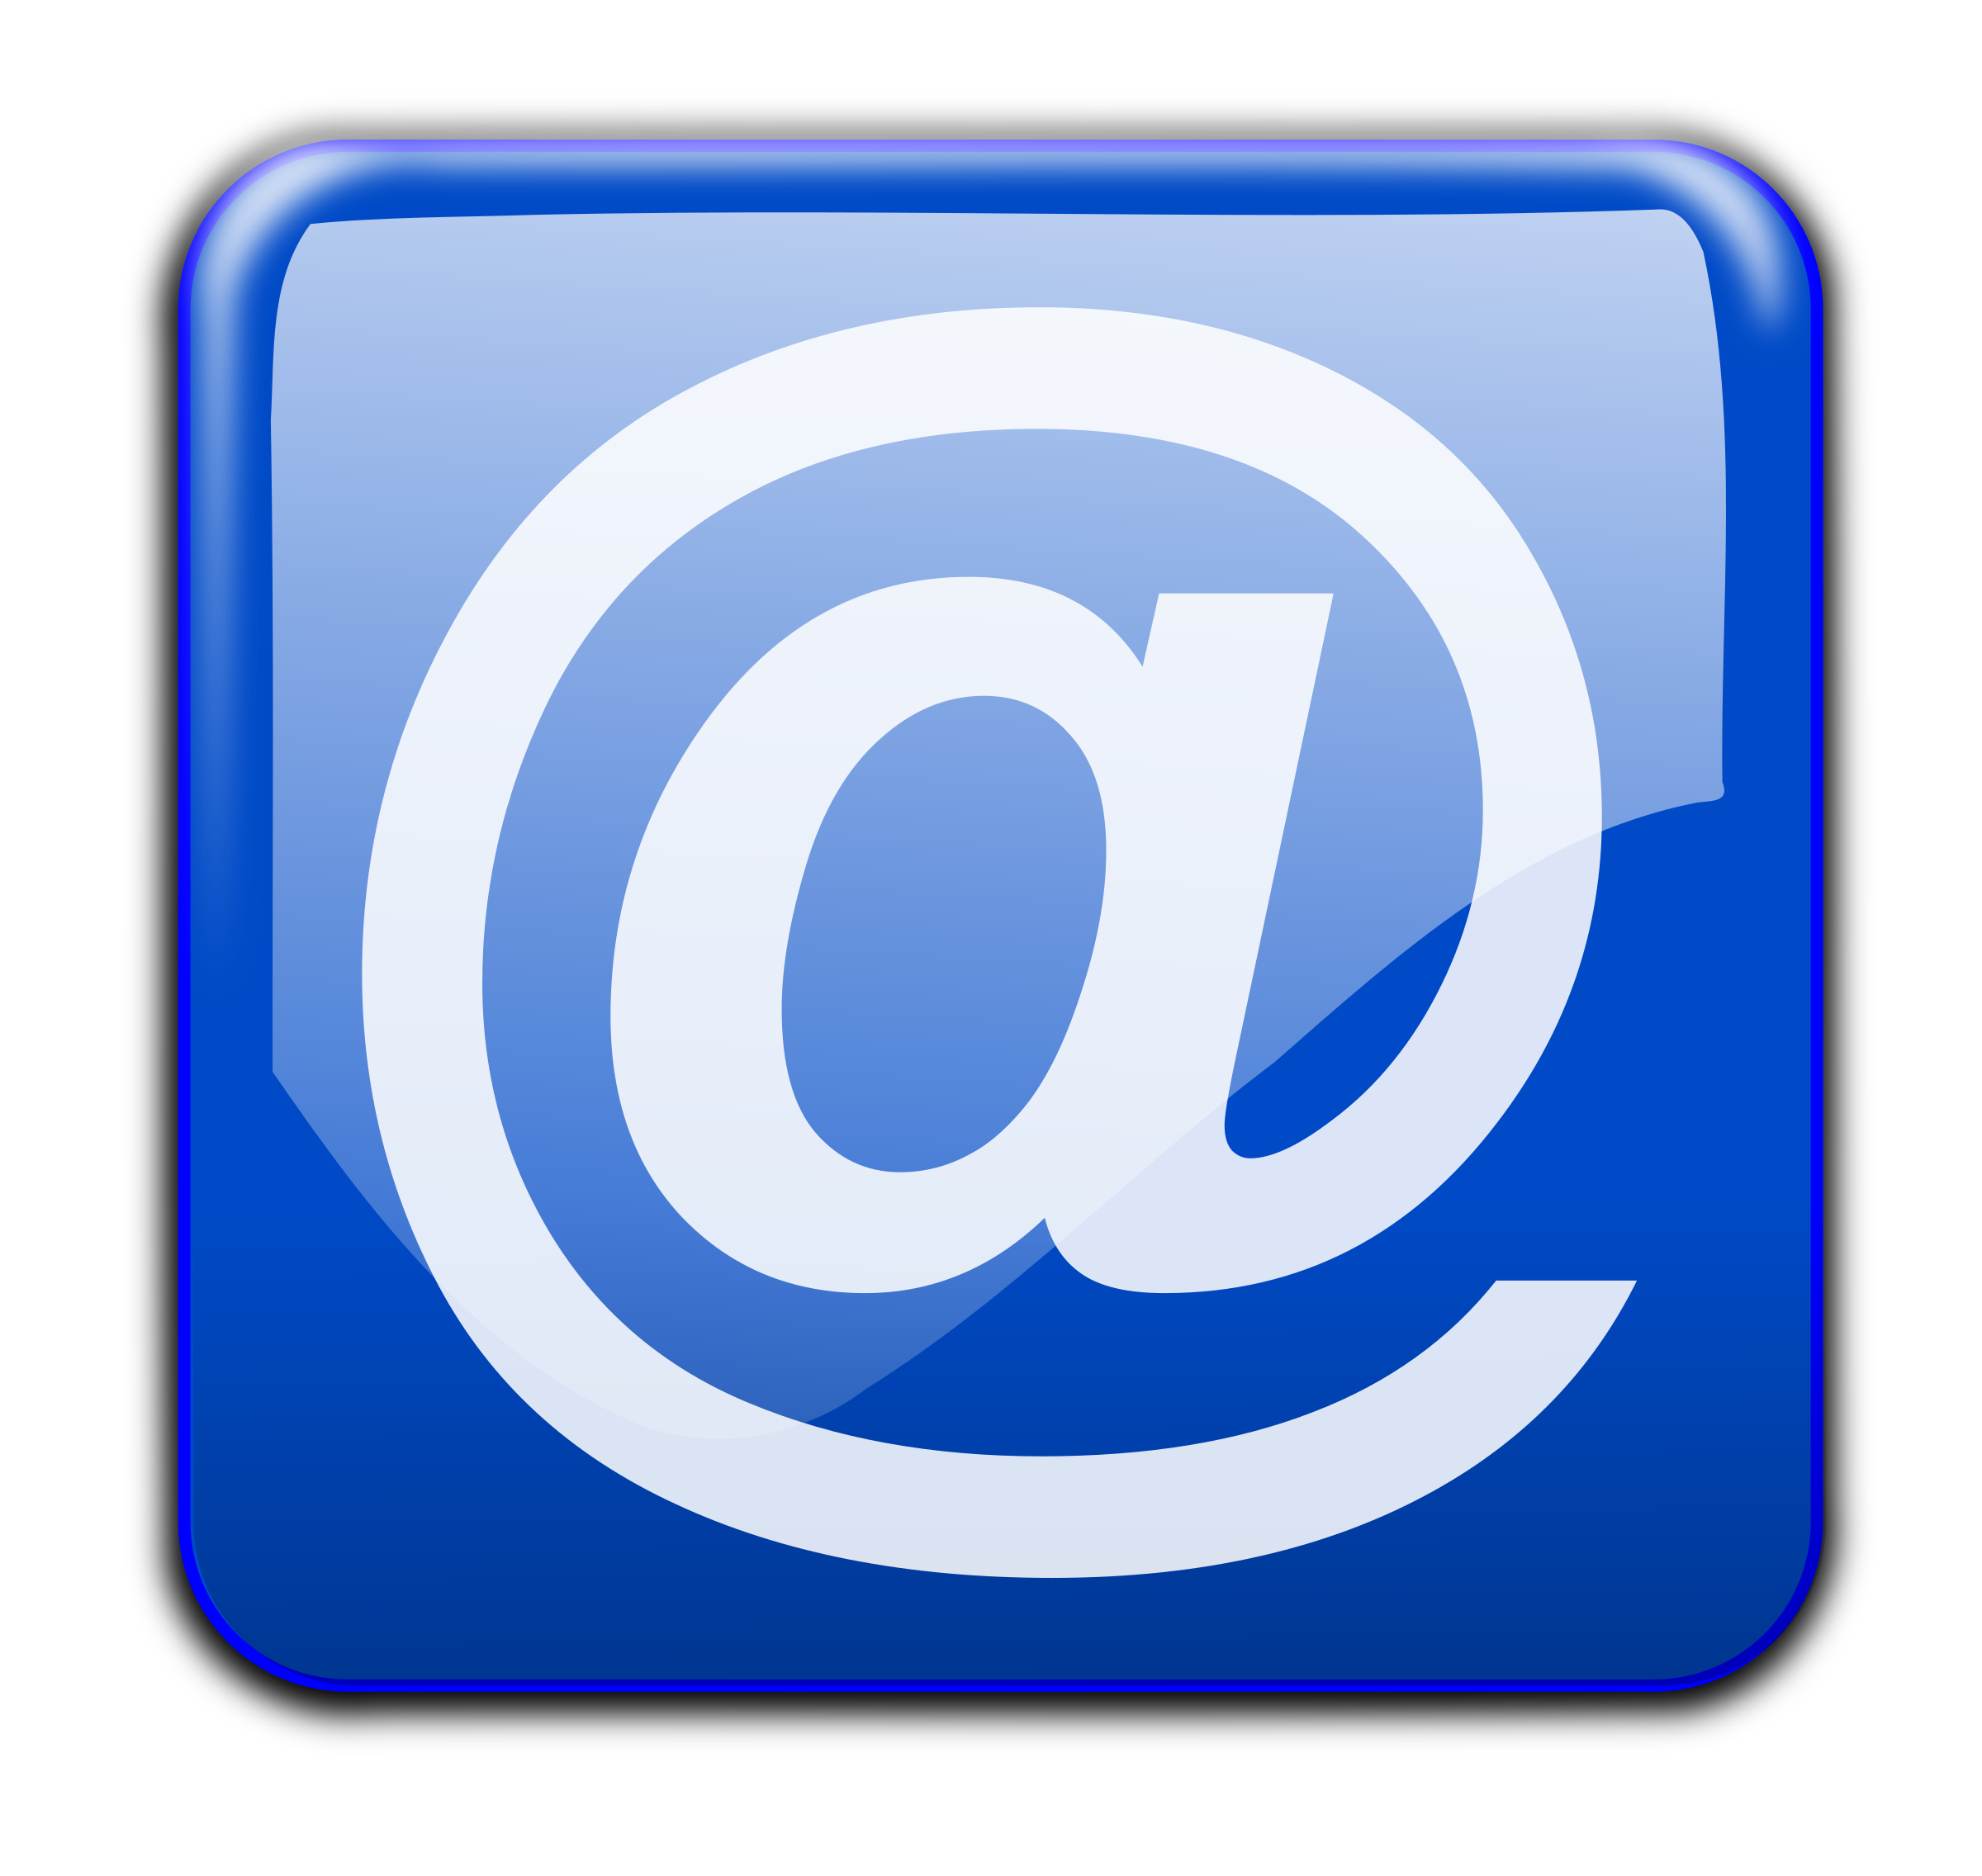 Clipart Symbols Free Download Email.